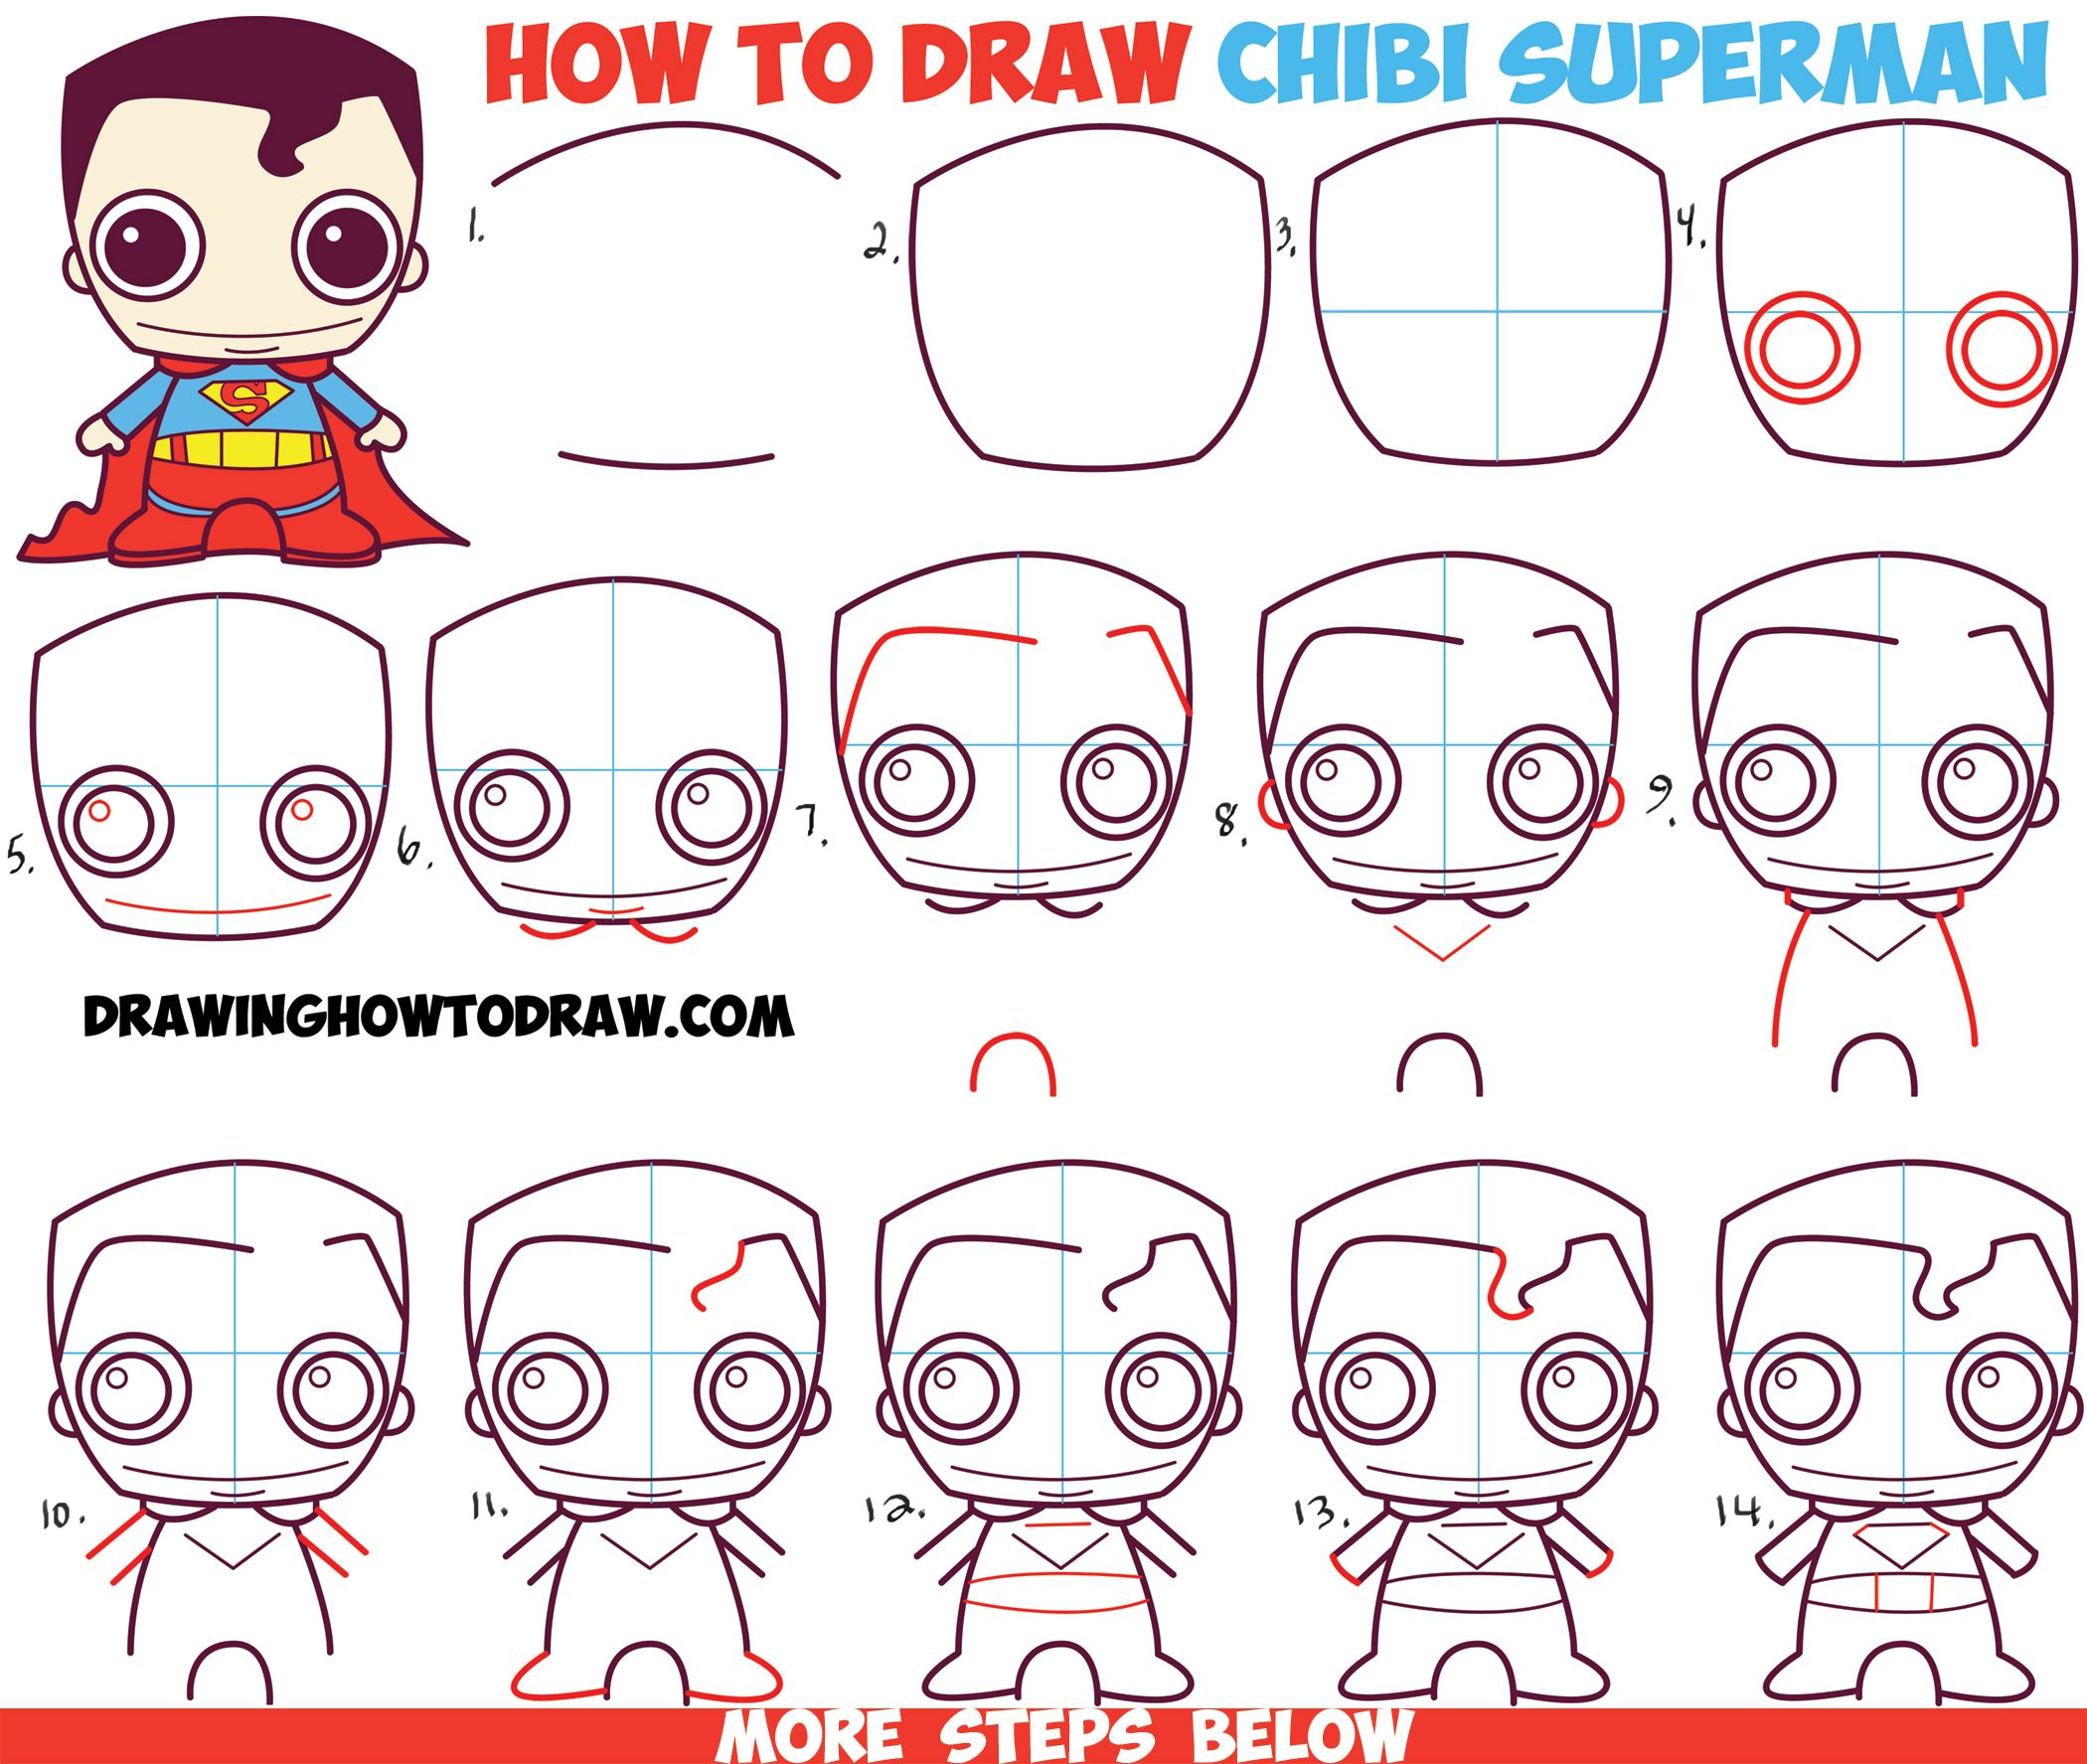 How To Draw Cute Chibi Superman From Dc Comics In Easy Step By Step Drawing Tutorial For Kids How To Draw Step By Step Drawing Tutorials Drawing Tutorials For Kids